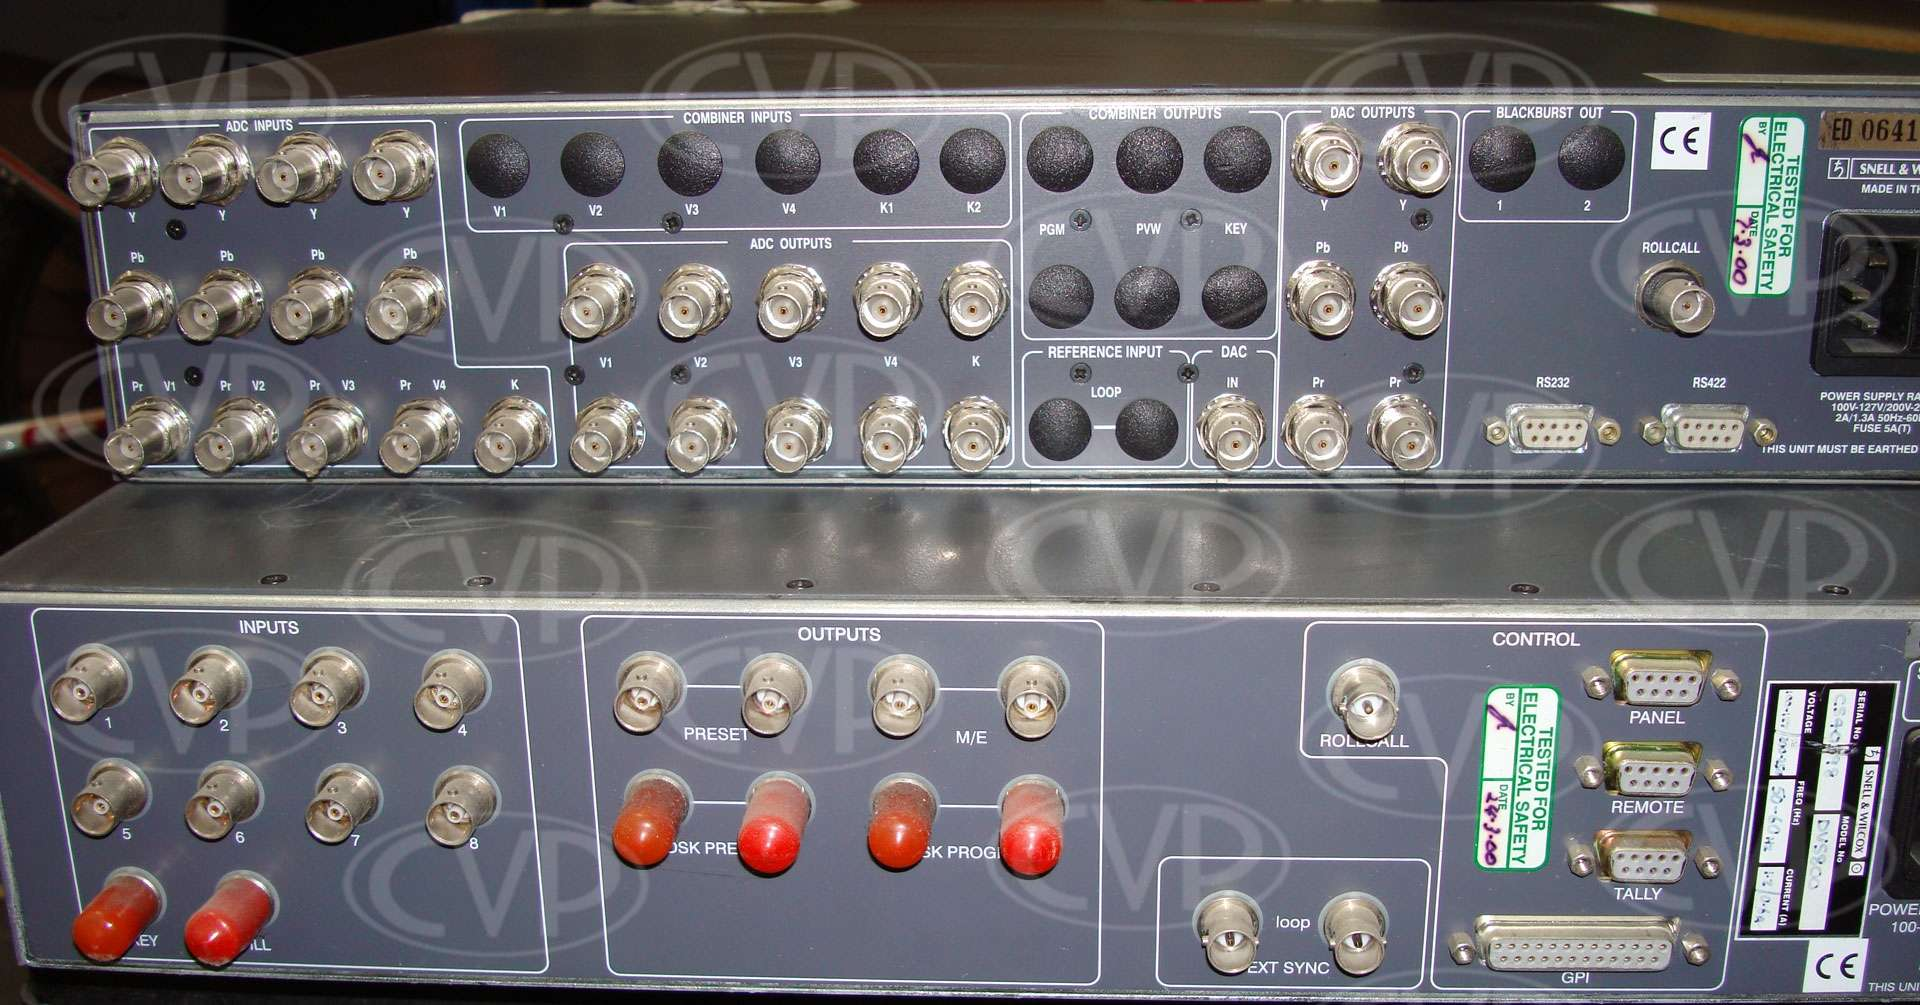 USED Snell & Wilcox DVS800 Production Switcher (Vision Mixer) /